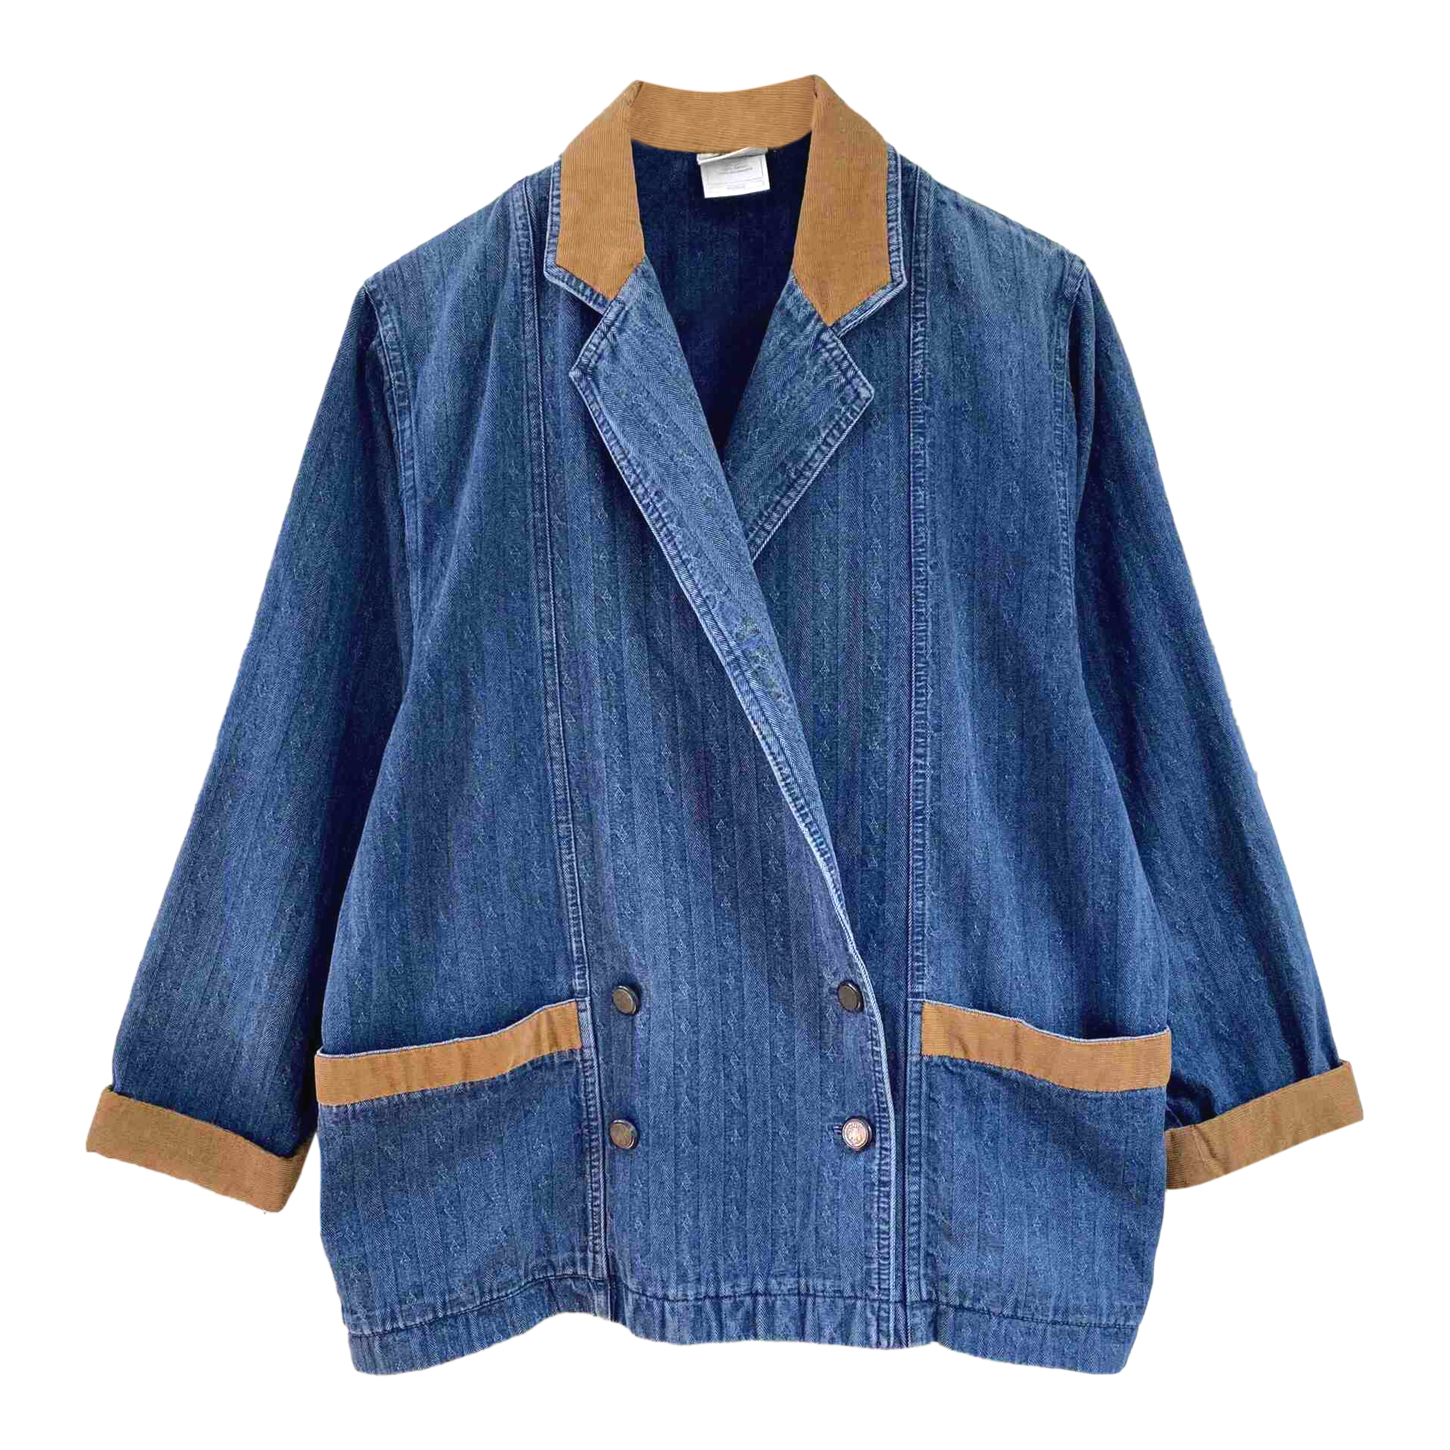 Veste en jean Laura Ashley